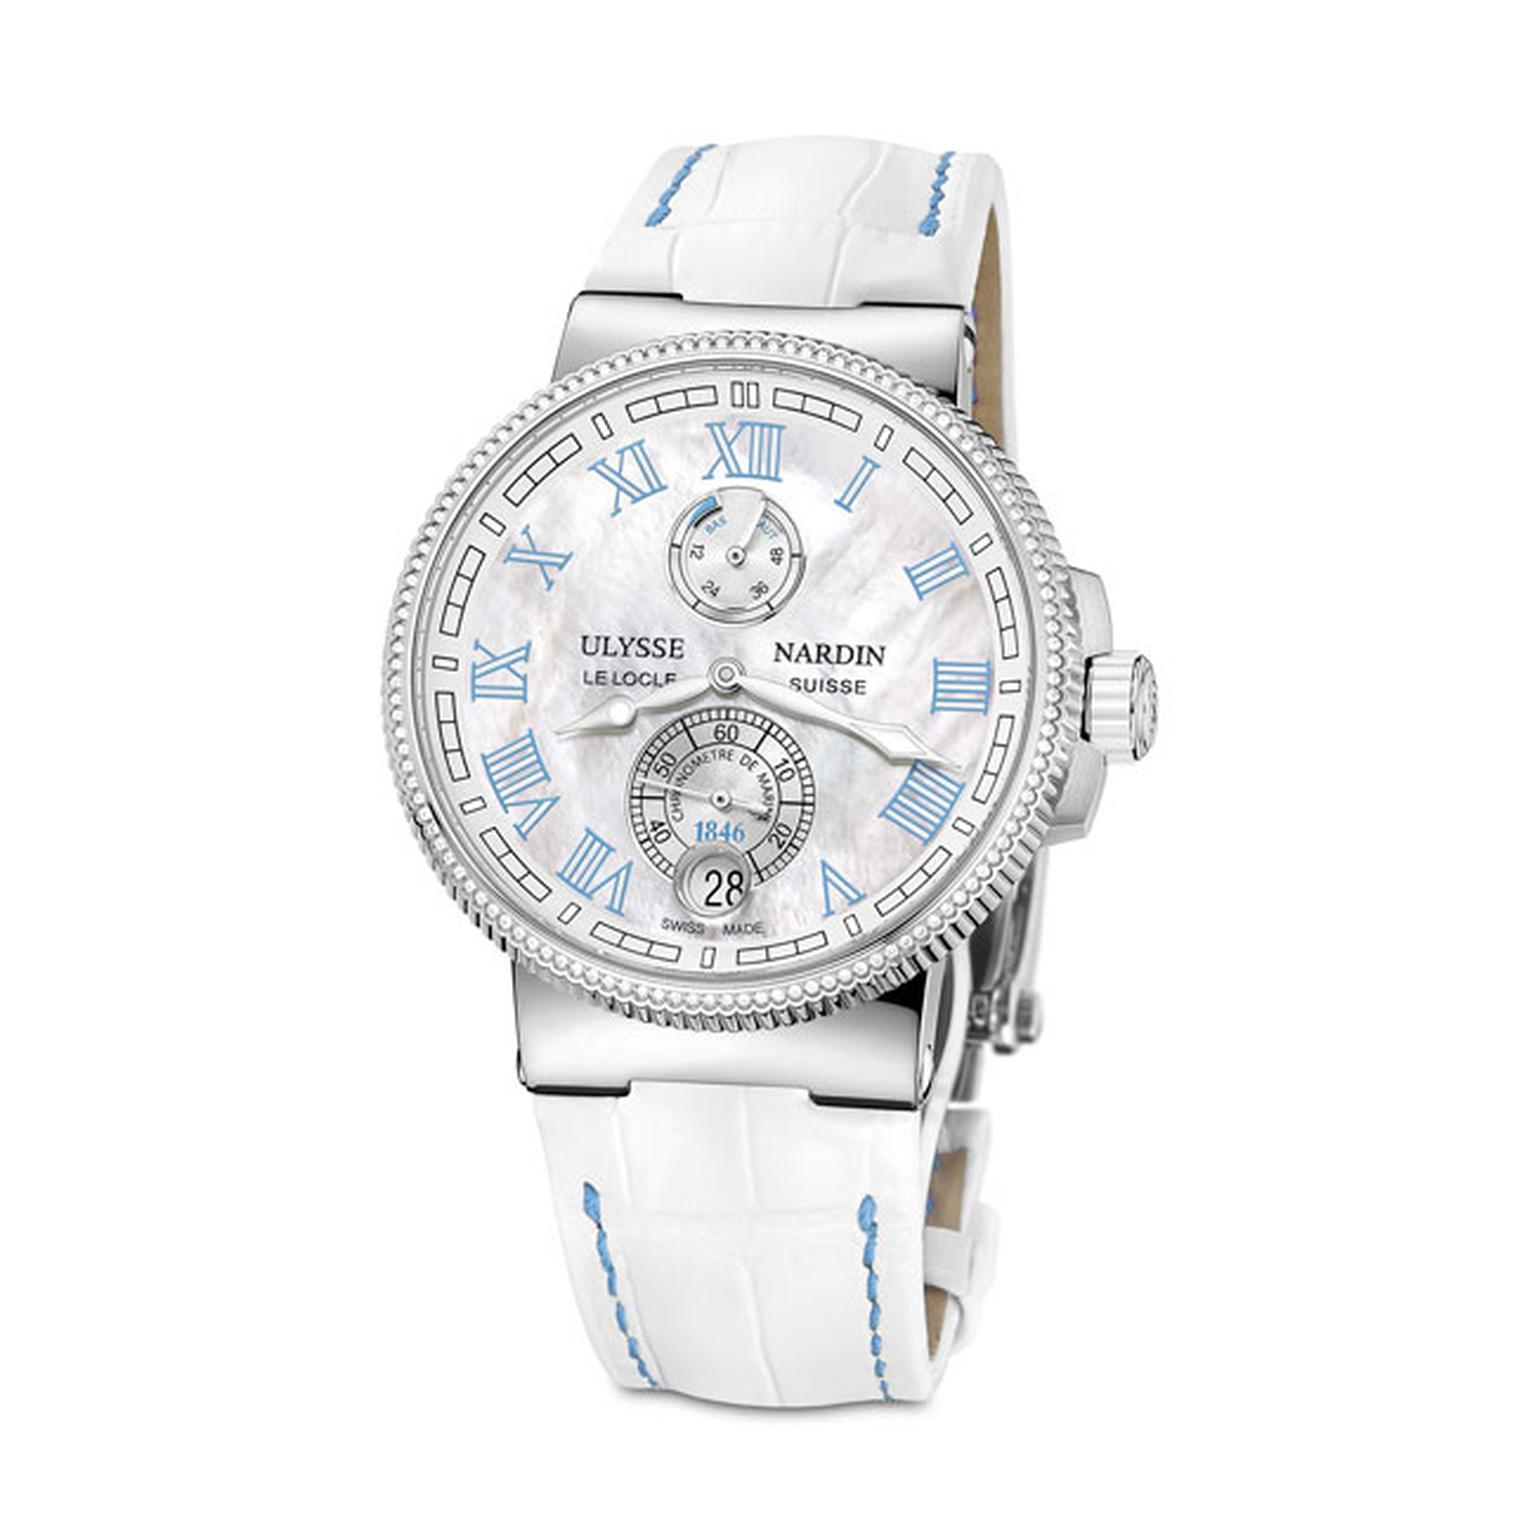 Ulysse Nardin Marine Chronometer 43mm ladies watch in blue_main